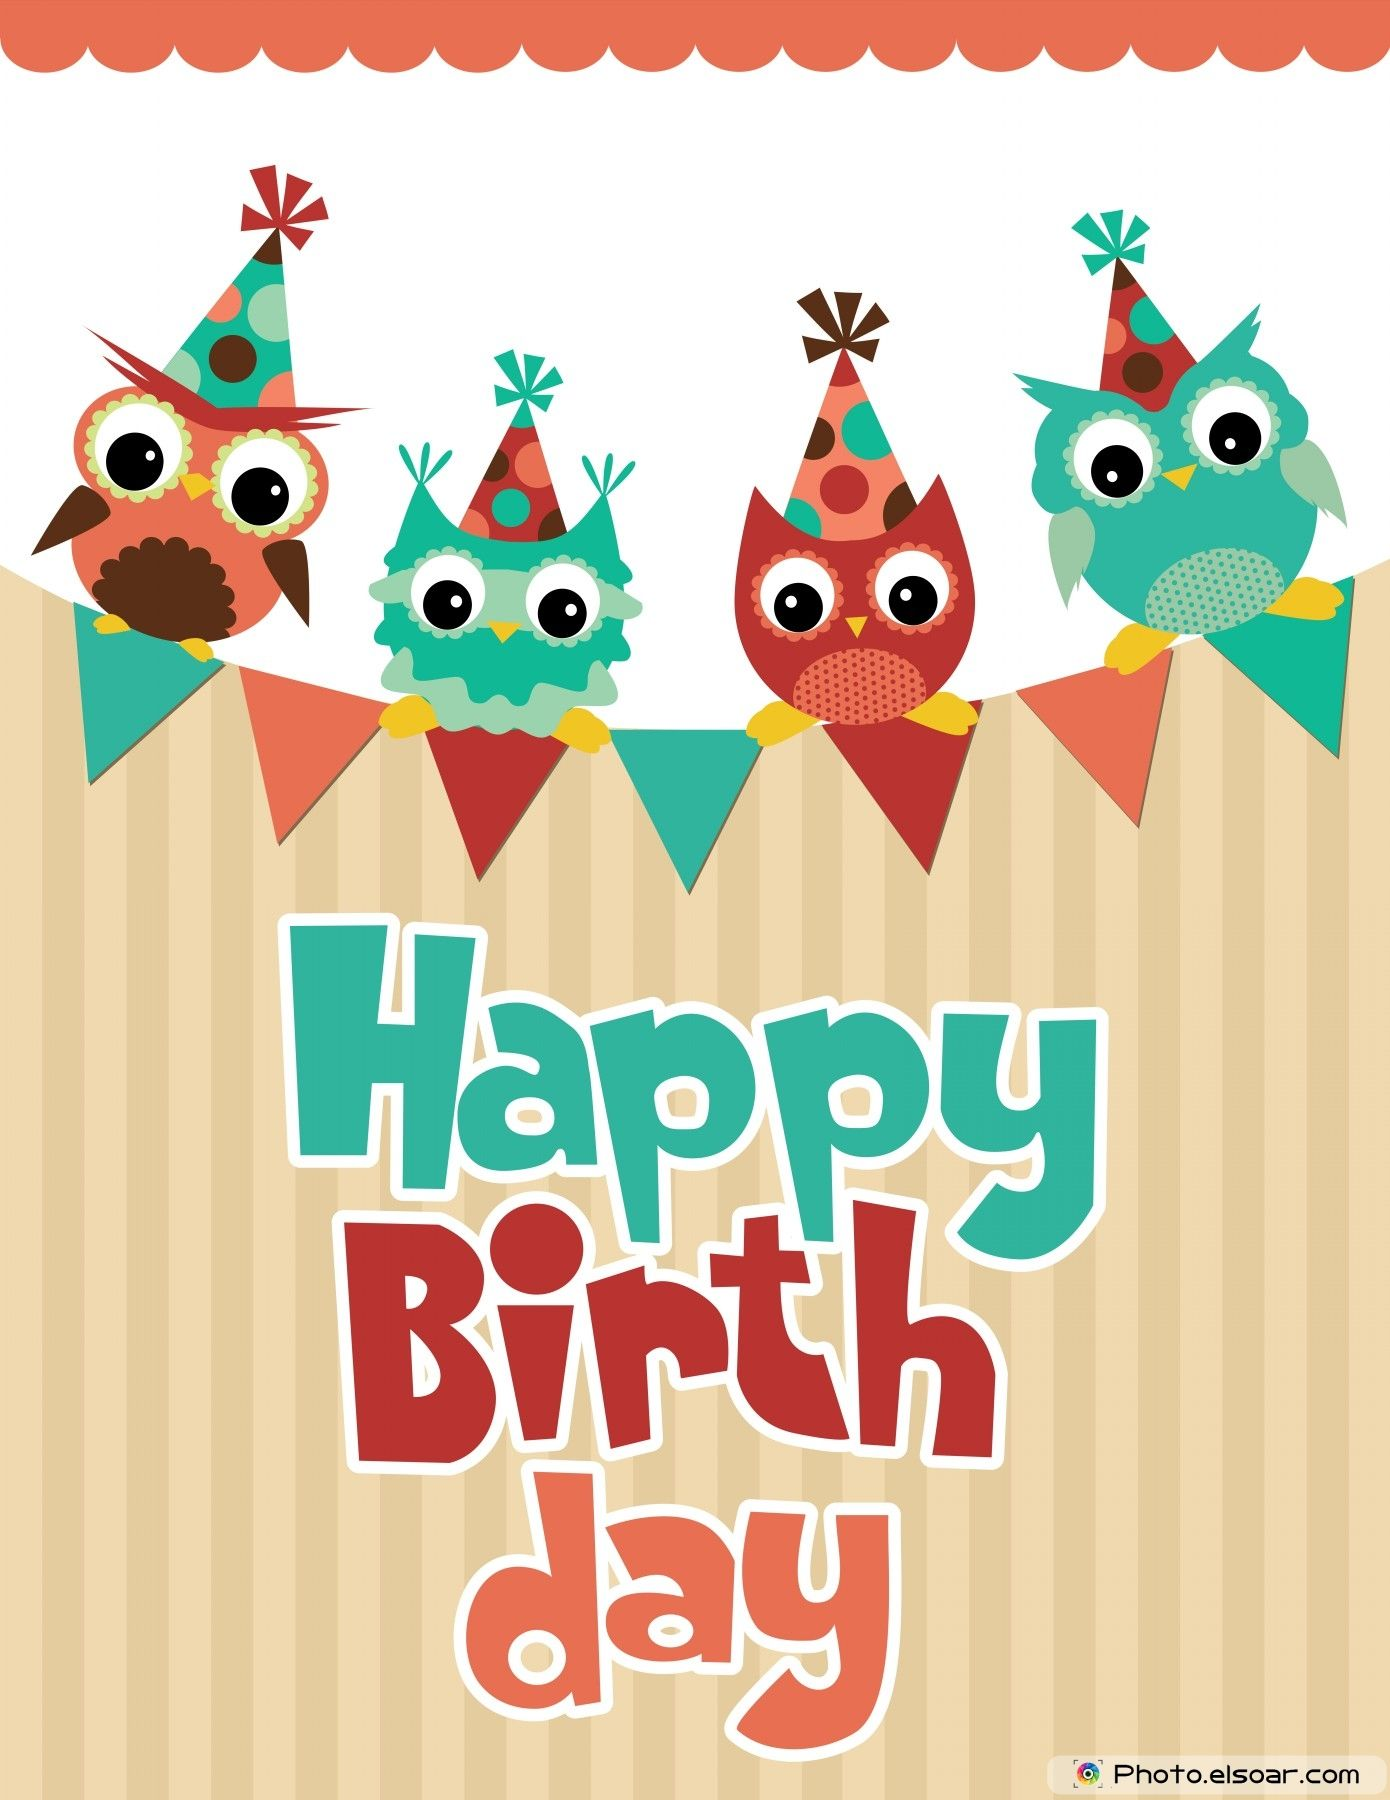 Birthday card design with. Angry clipart happy